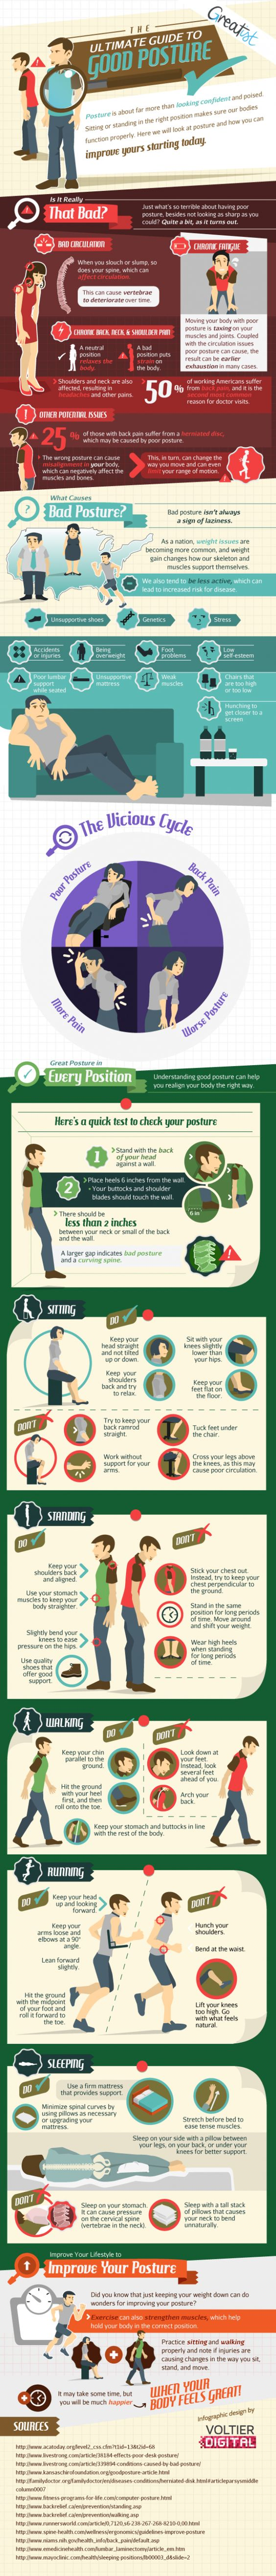 The Ultimate Guide To Good Posture. Repinned by SOS Inc. Resources @sostherapy.